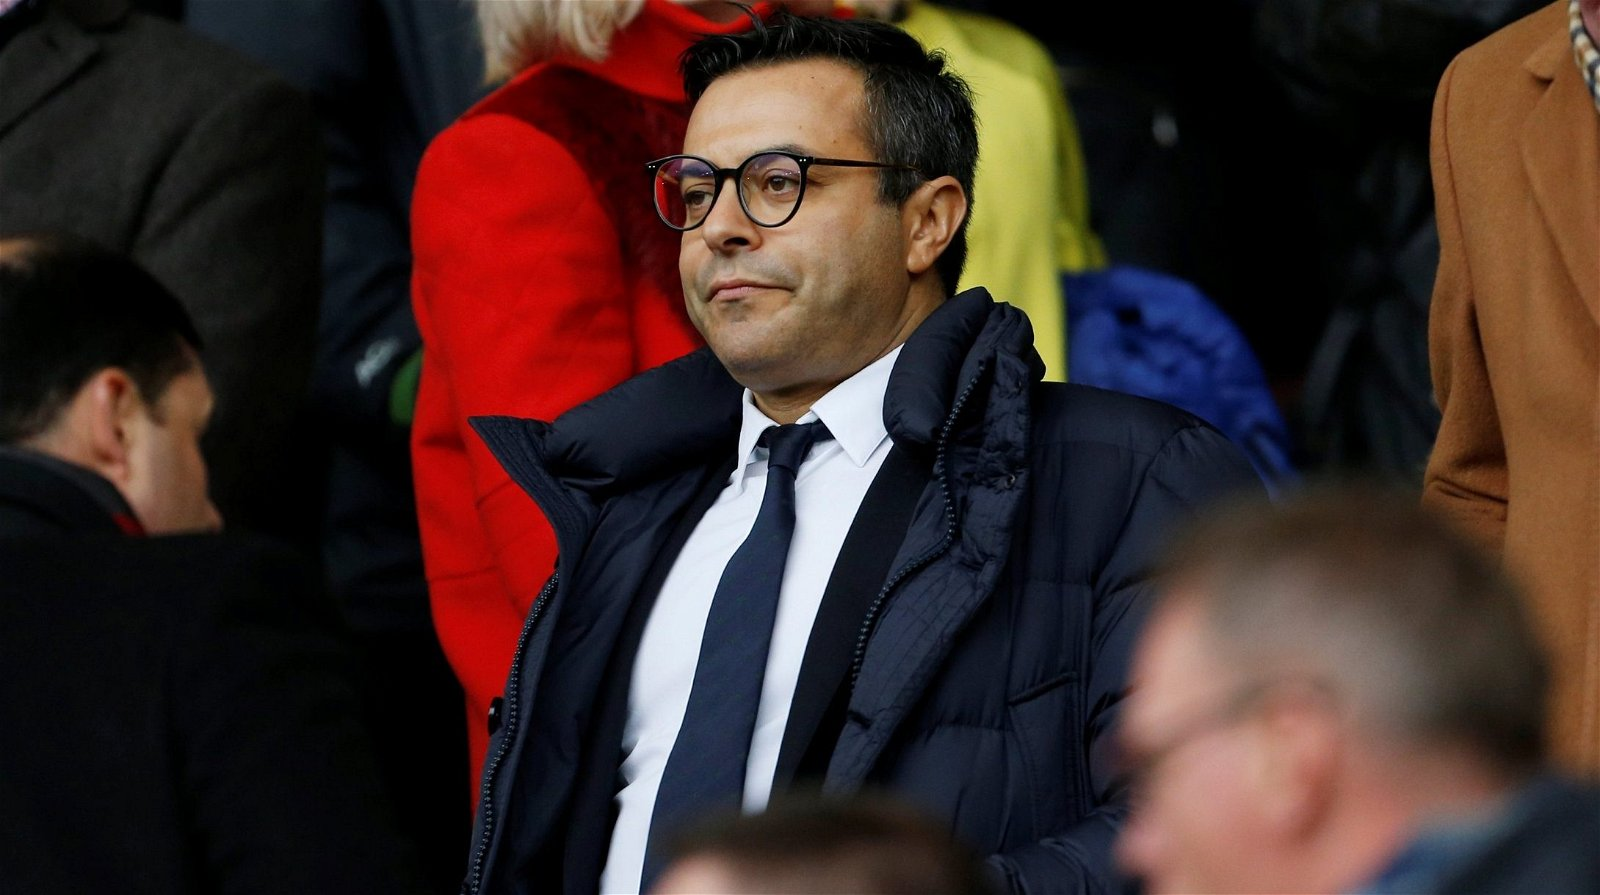 Leeds United chairman Andrea Radrizzani looks on from the stand as his club faces Sheffield United